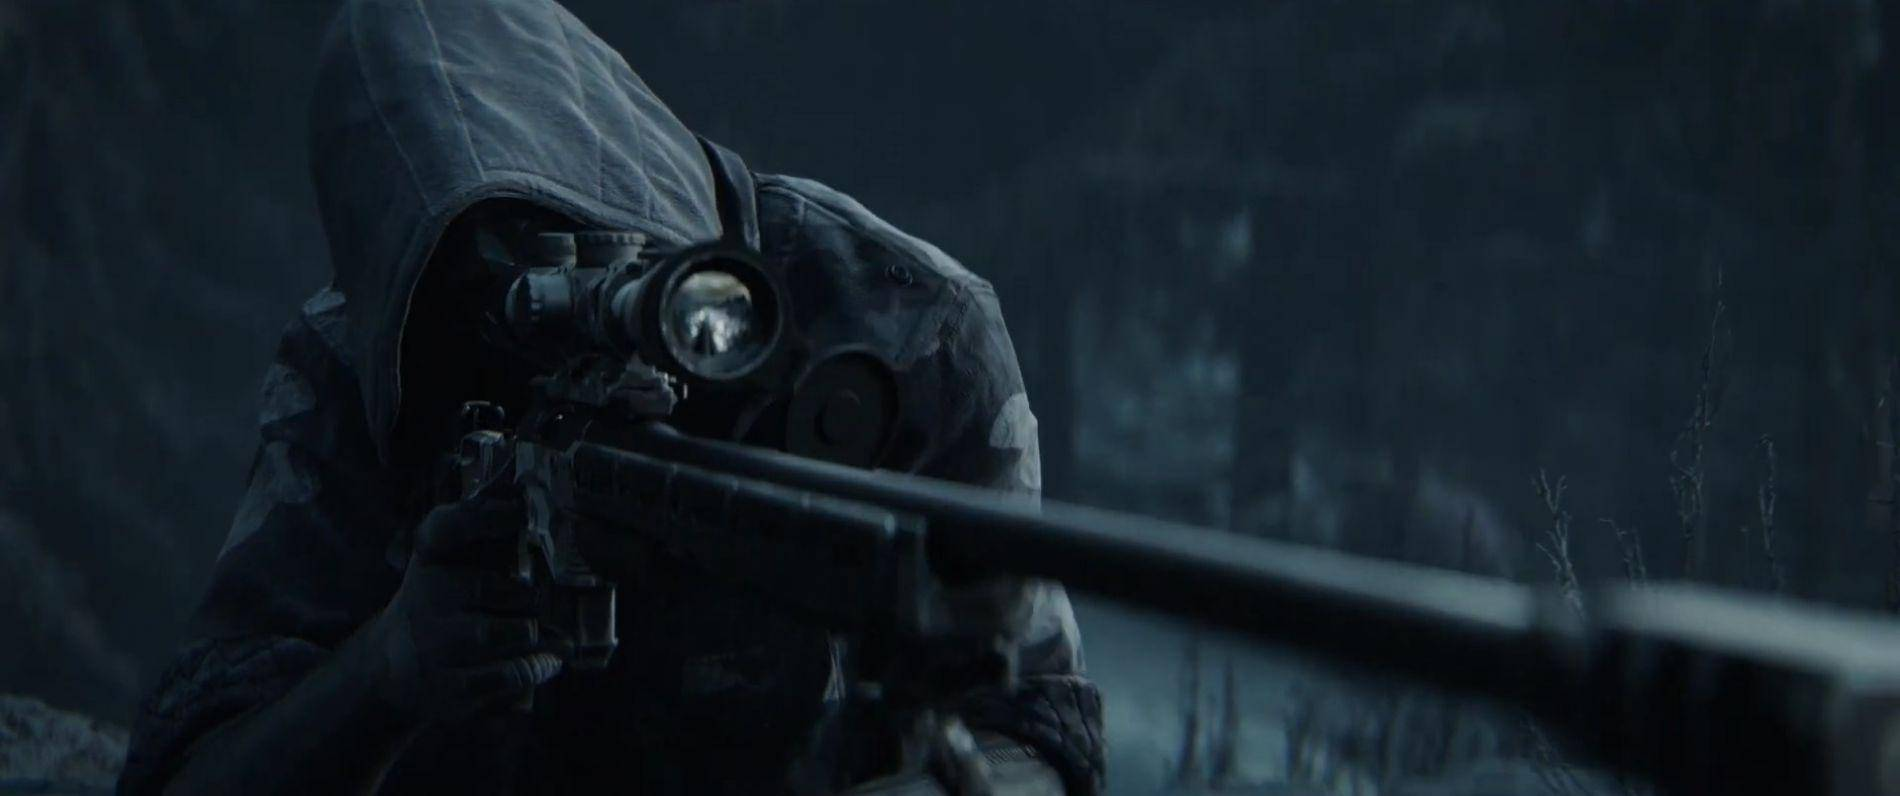 E32019: ¡Probamos Sniper Ghost Warrior Contracts! 2